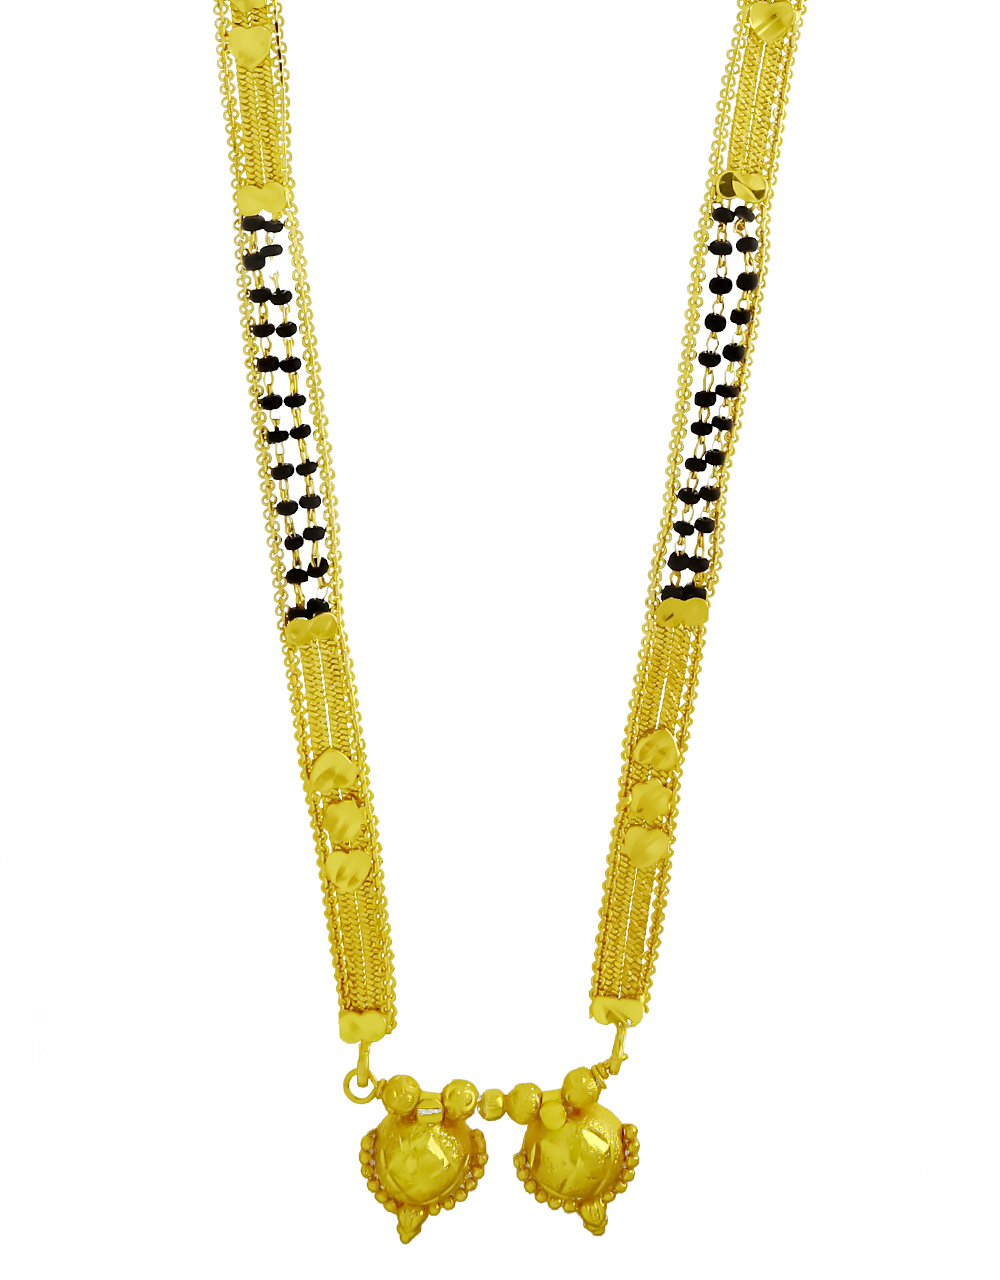 Real Gold Finishing Adorable Long Mangalsutra Design for Women